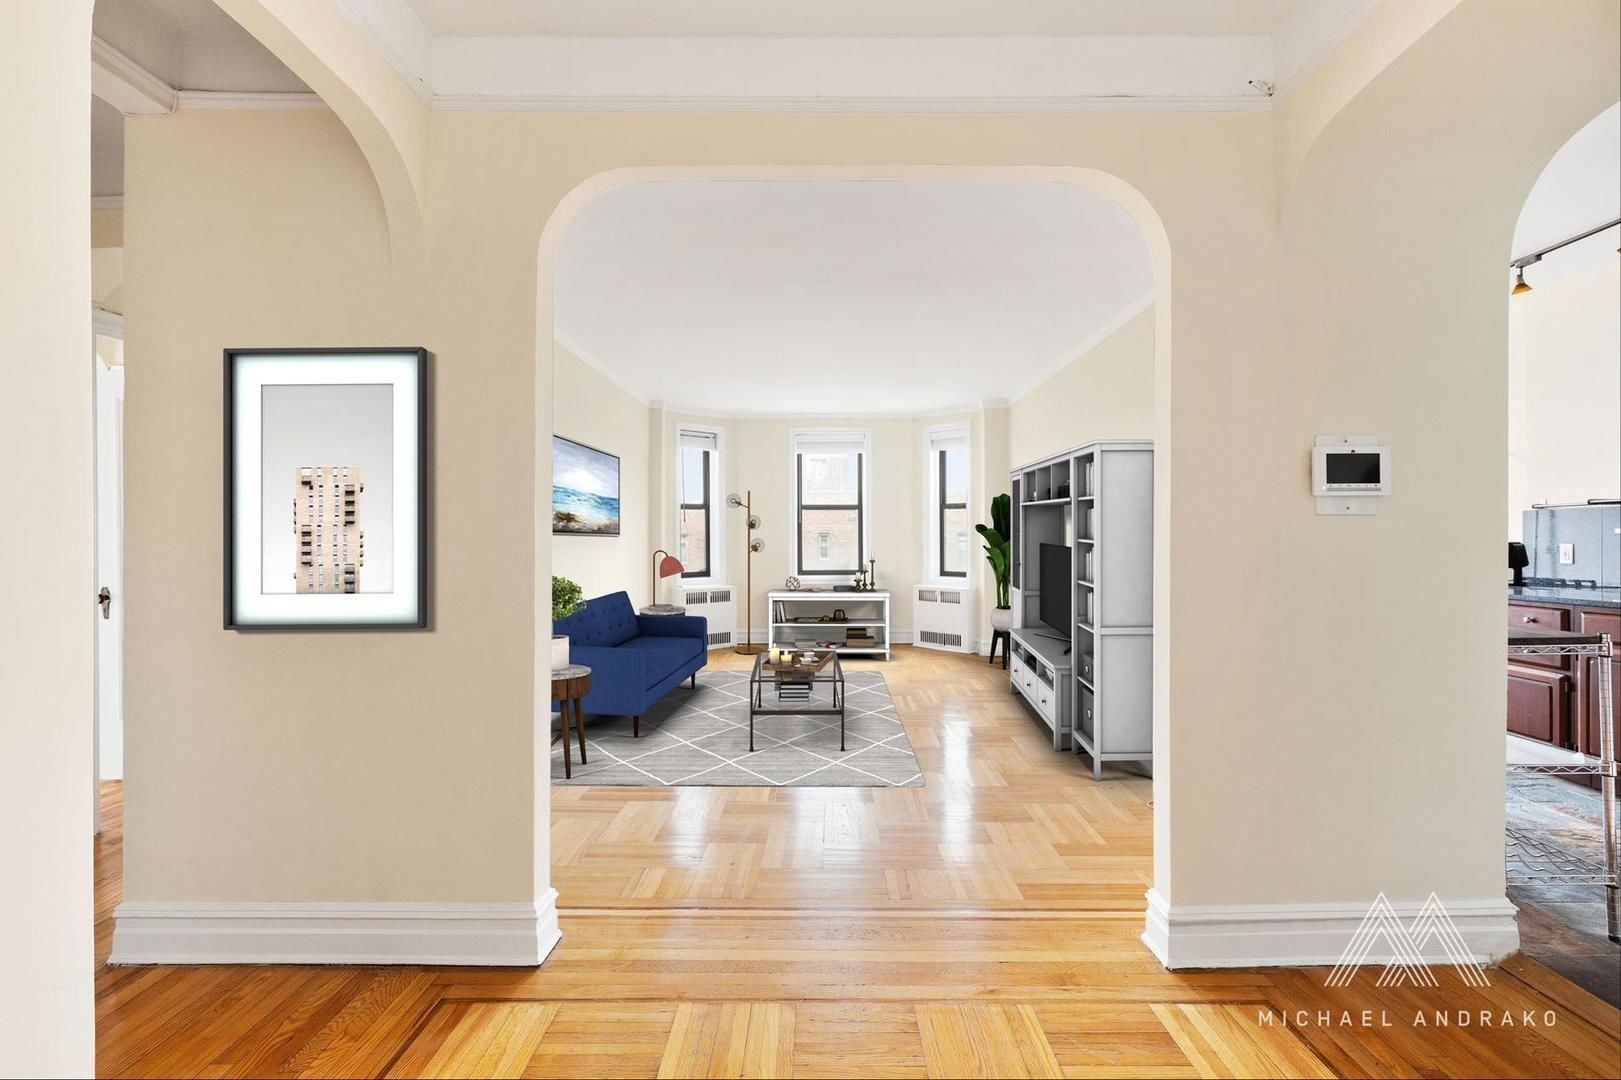 Apartment for sale at 35-06 88th Street, Apt 6-B